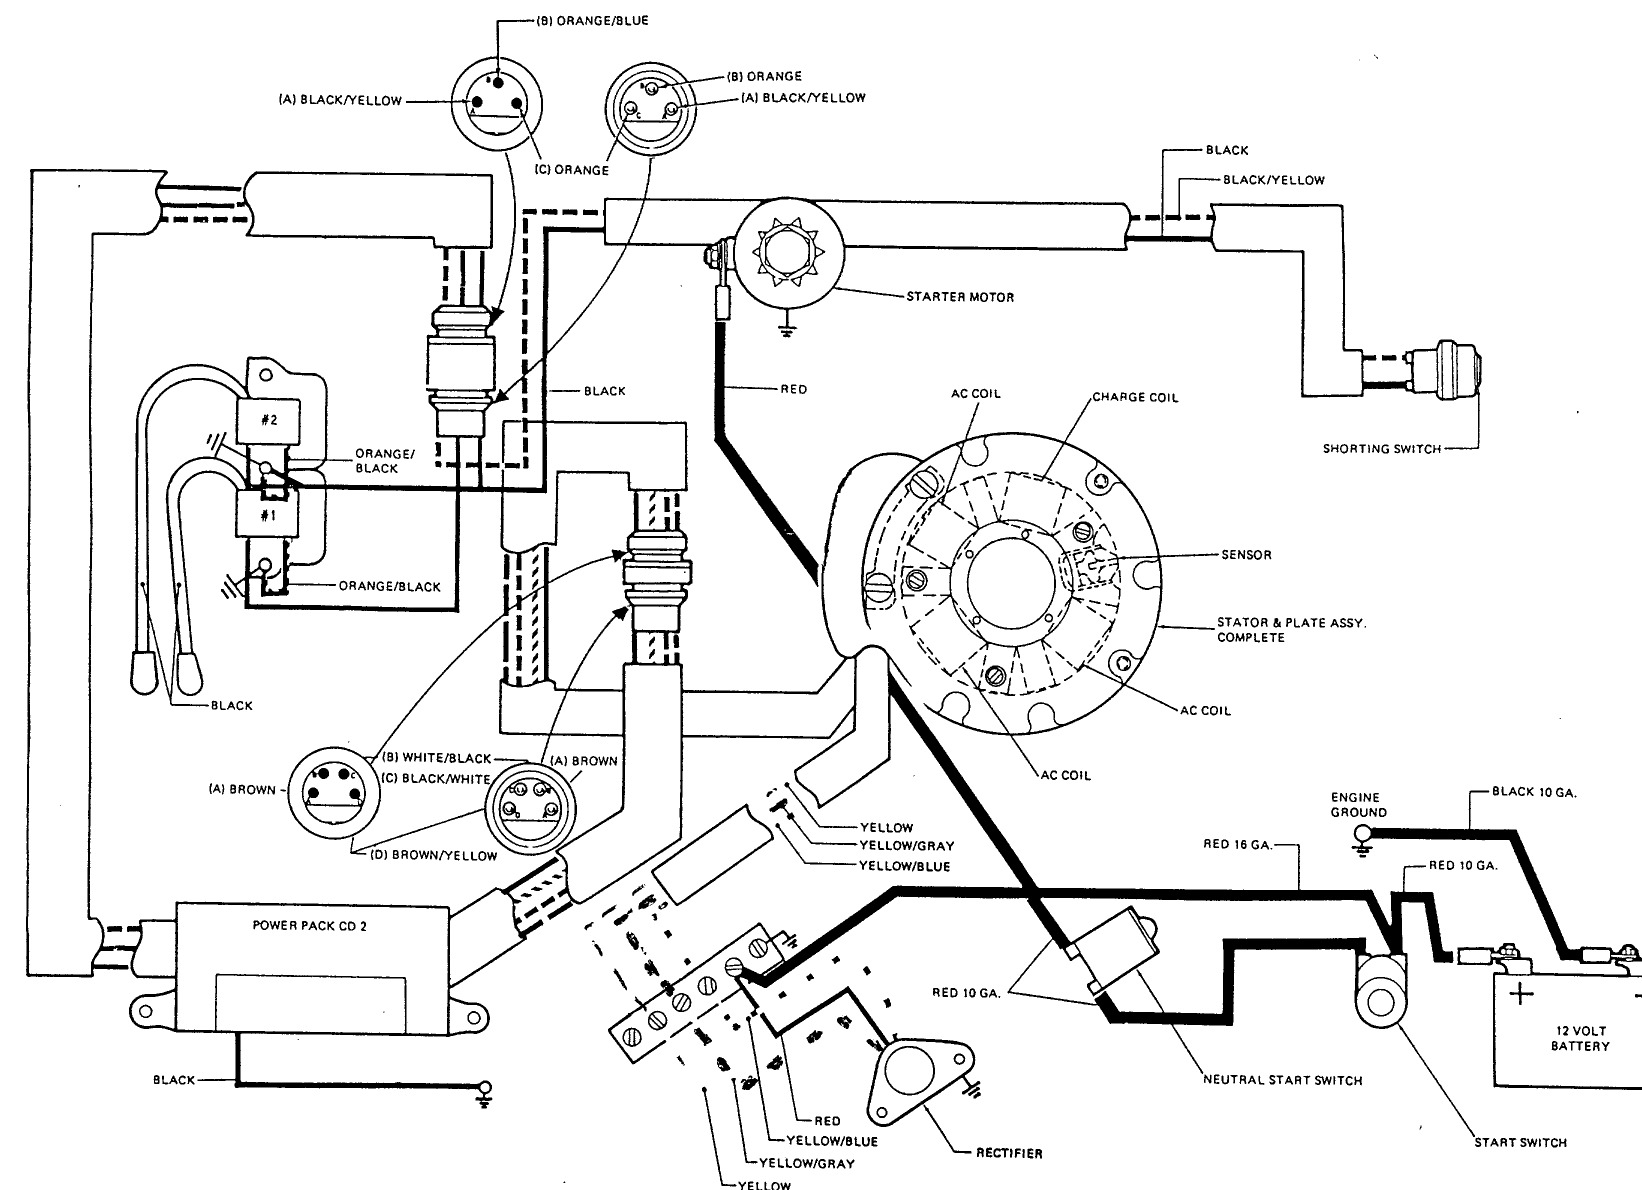 electrical diagram electric maintaining johnson 9 9 troubleshooting 1964 johnson outboard 40 hp wiring diagram at bayanpartner.co